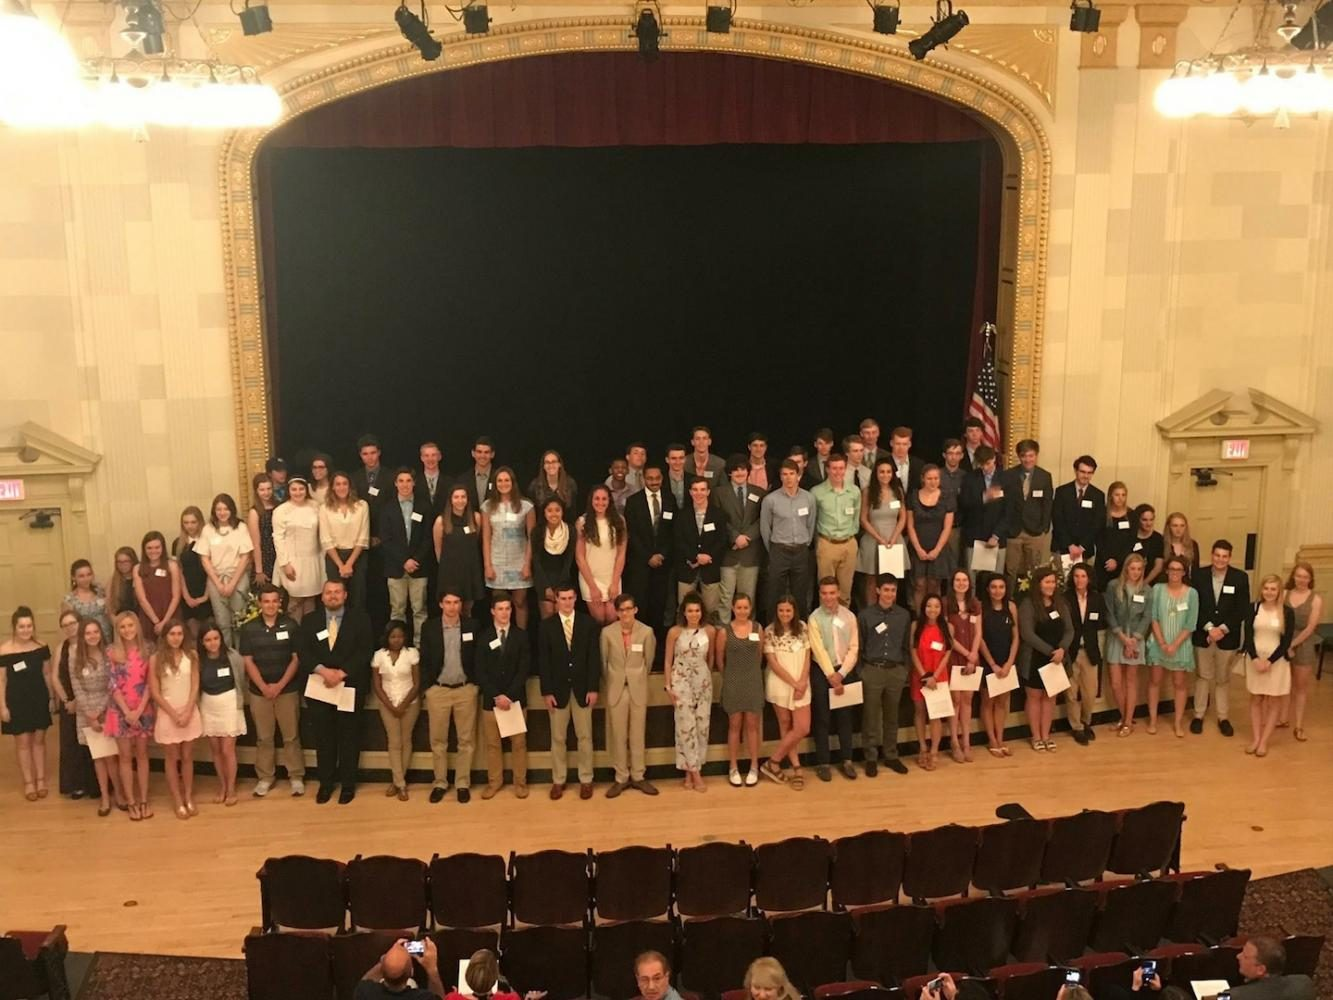 The+2017+recipients+of+the+Mothers+Club+scholarships+in+the+South+auditorium.+There+were+88+students+who+received+scholarships+through+this+event+for+this+school+year.